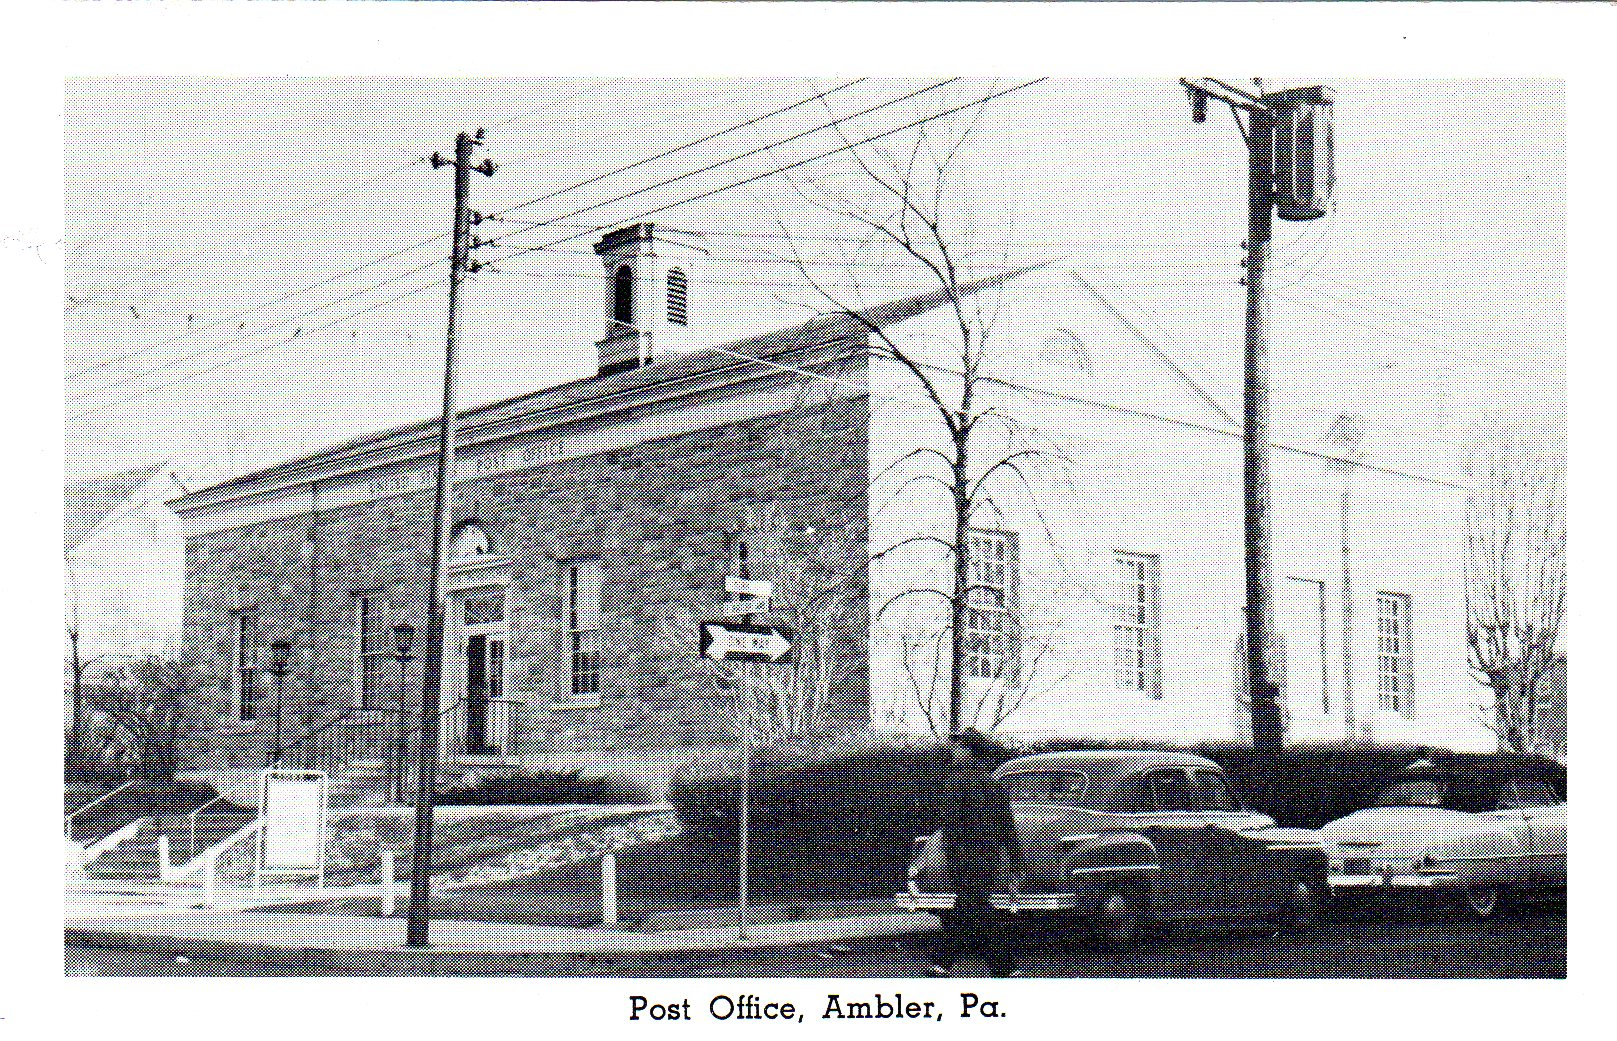 Post Card Collection (E Simon)_2682_58_Post Office, Ambler, Pa